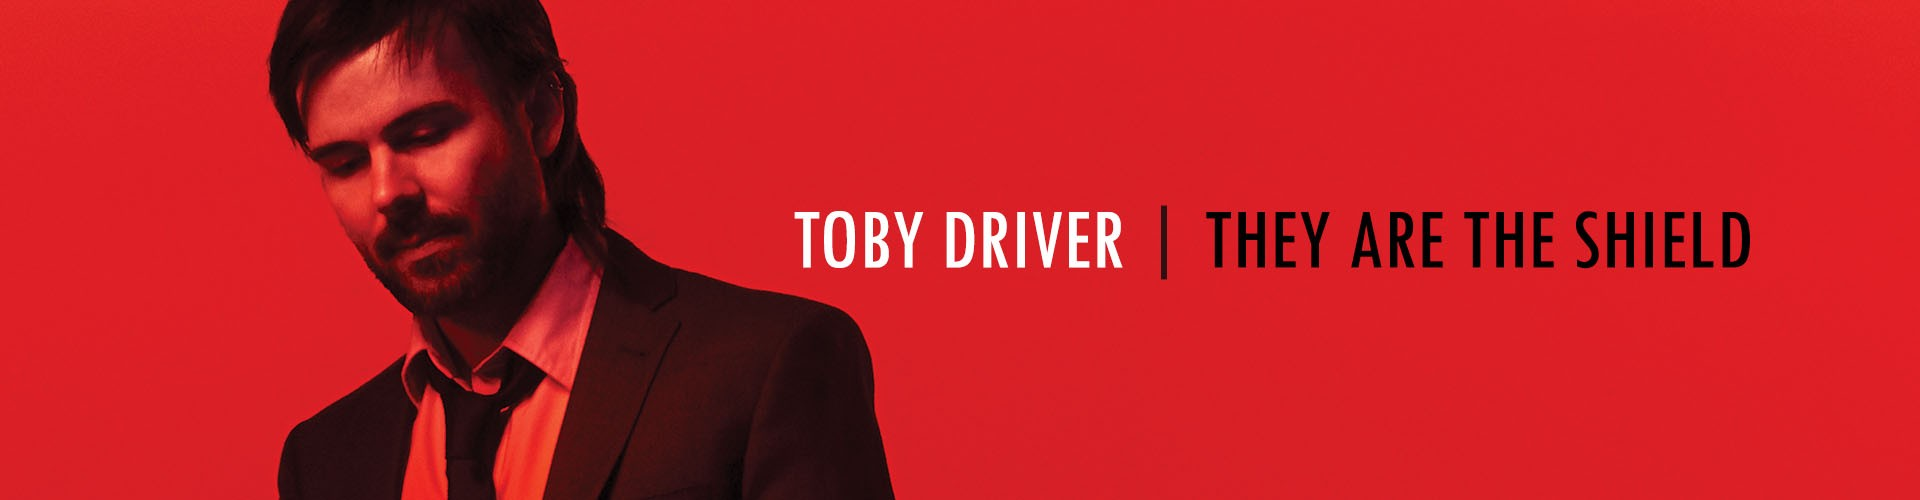 "Toby Driver ""They Are the Shield"""